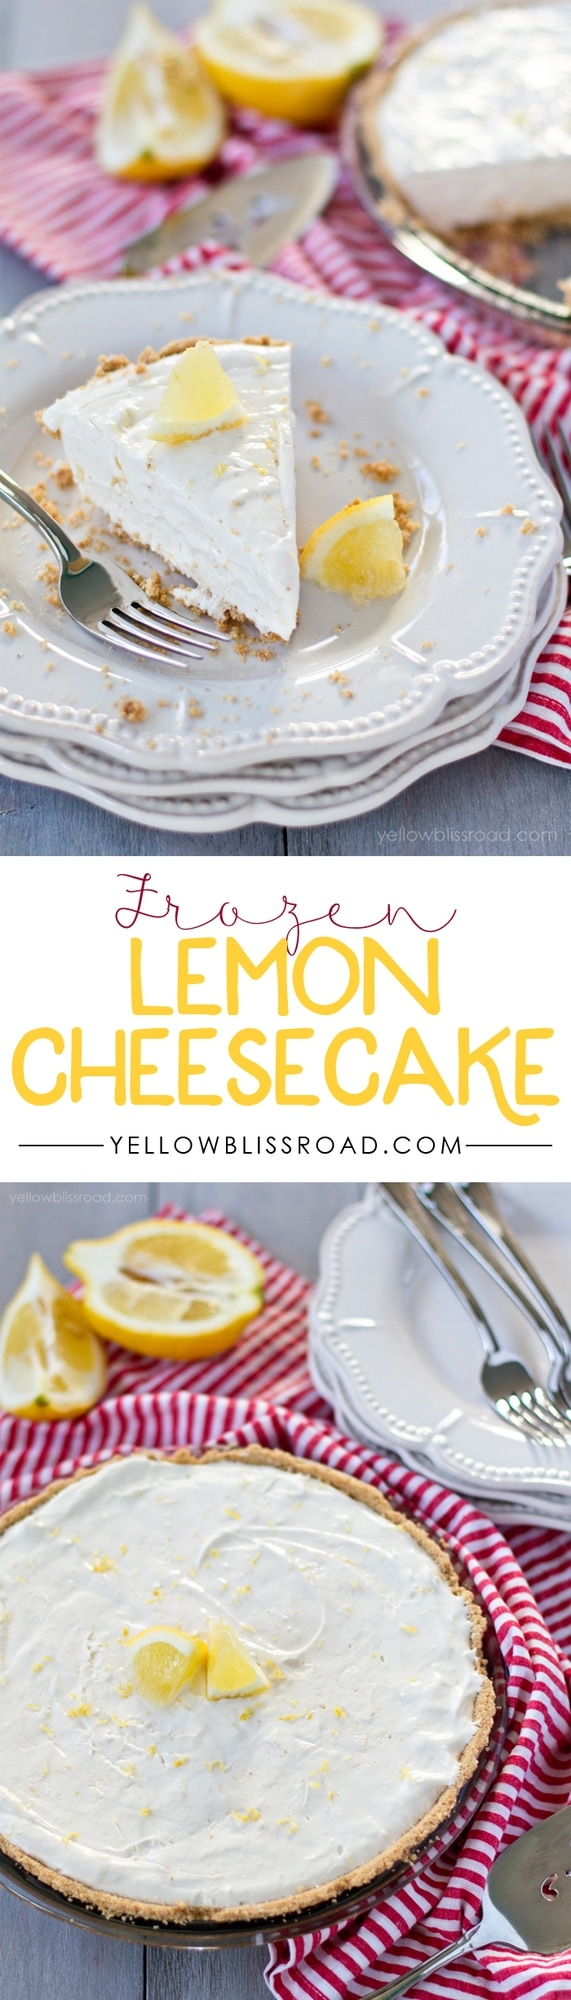 5 Ingredient Frozen Lemon Cheesecake - Perfectly tart and sweet and perfect for summer!